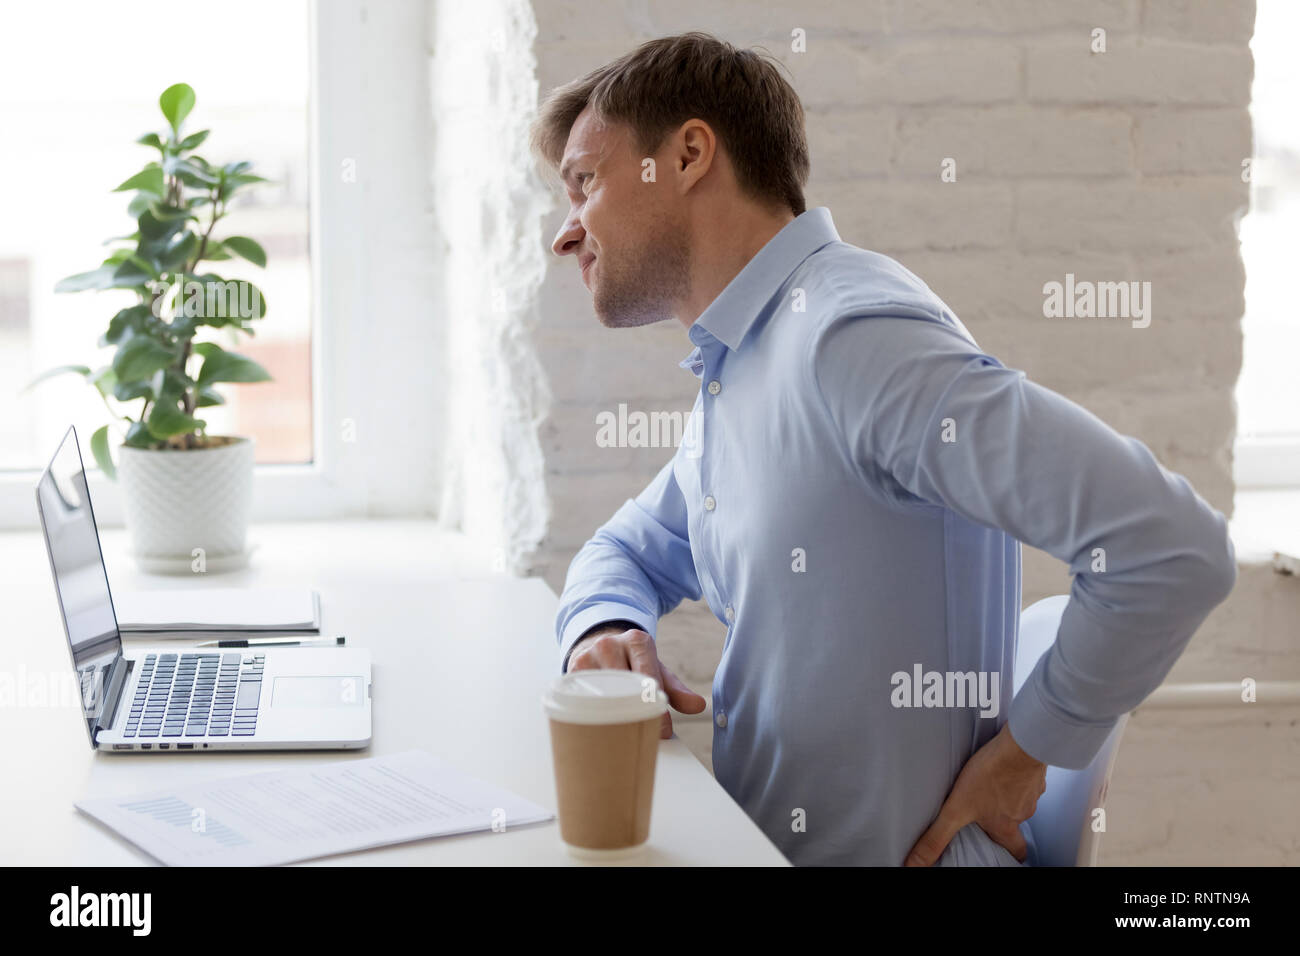 Office worker having strong lower back pain - Stock Image